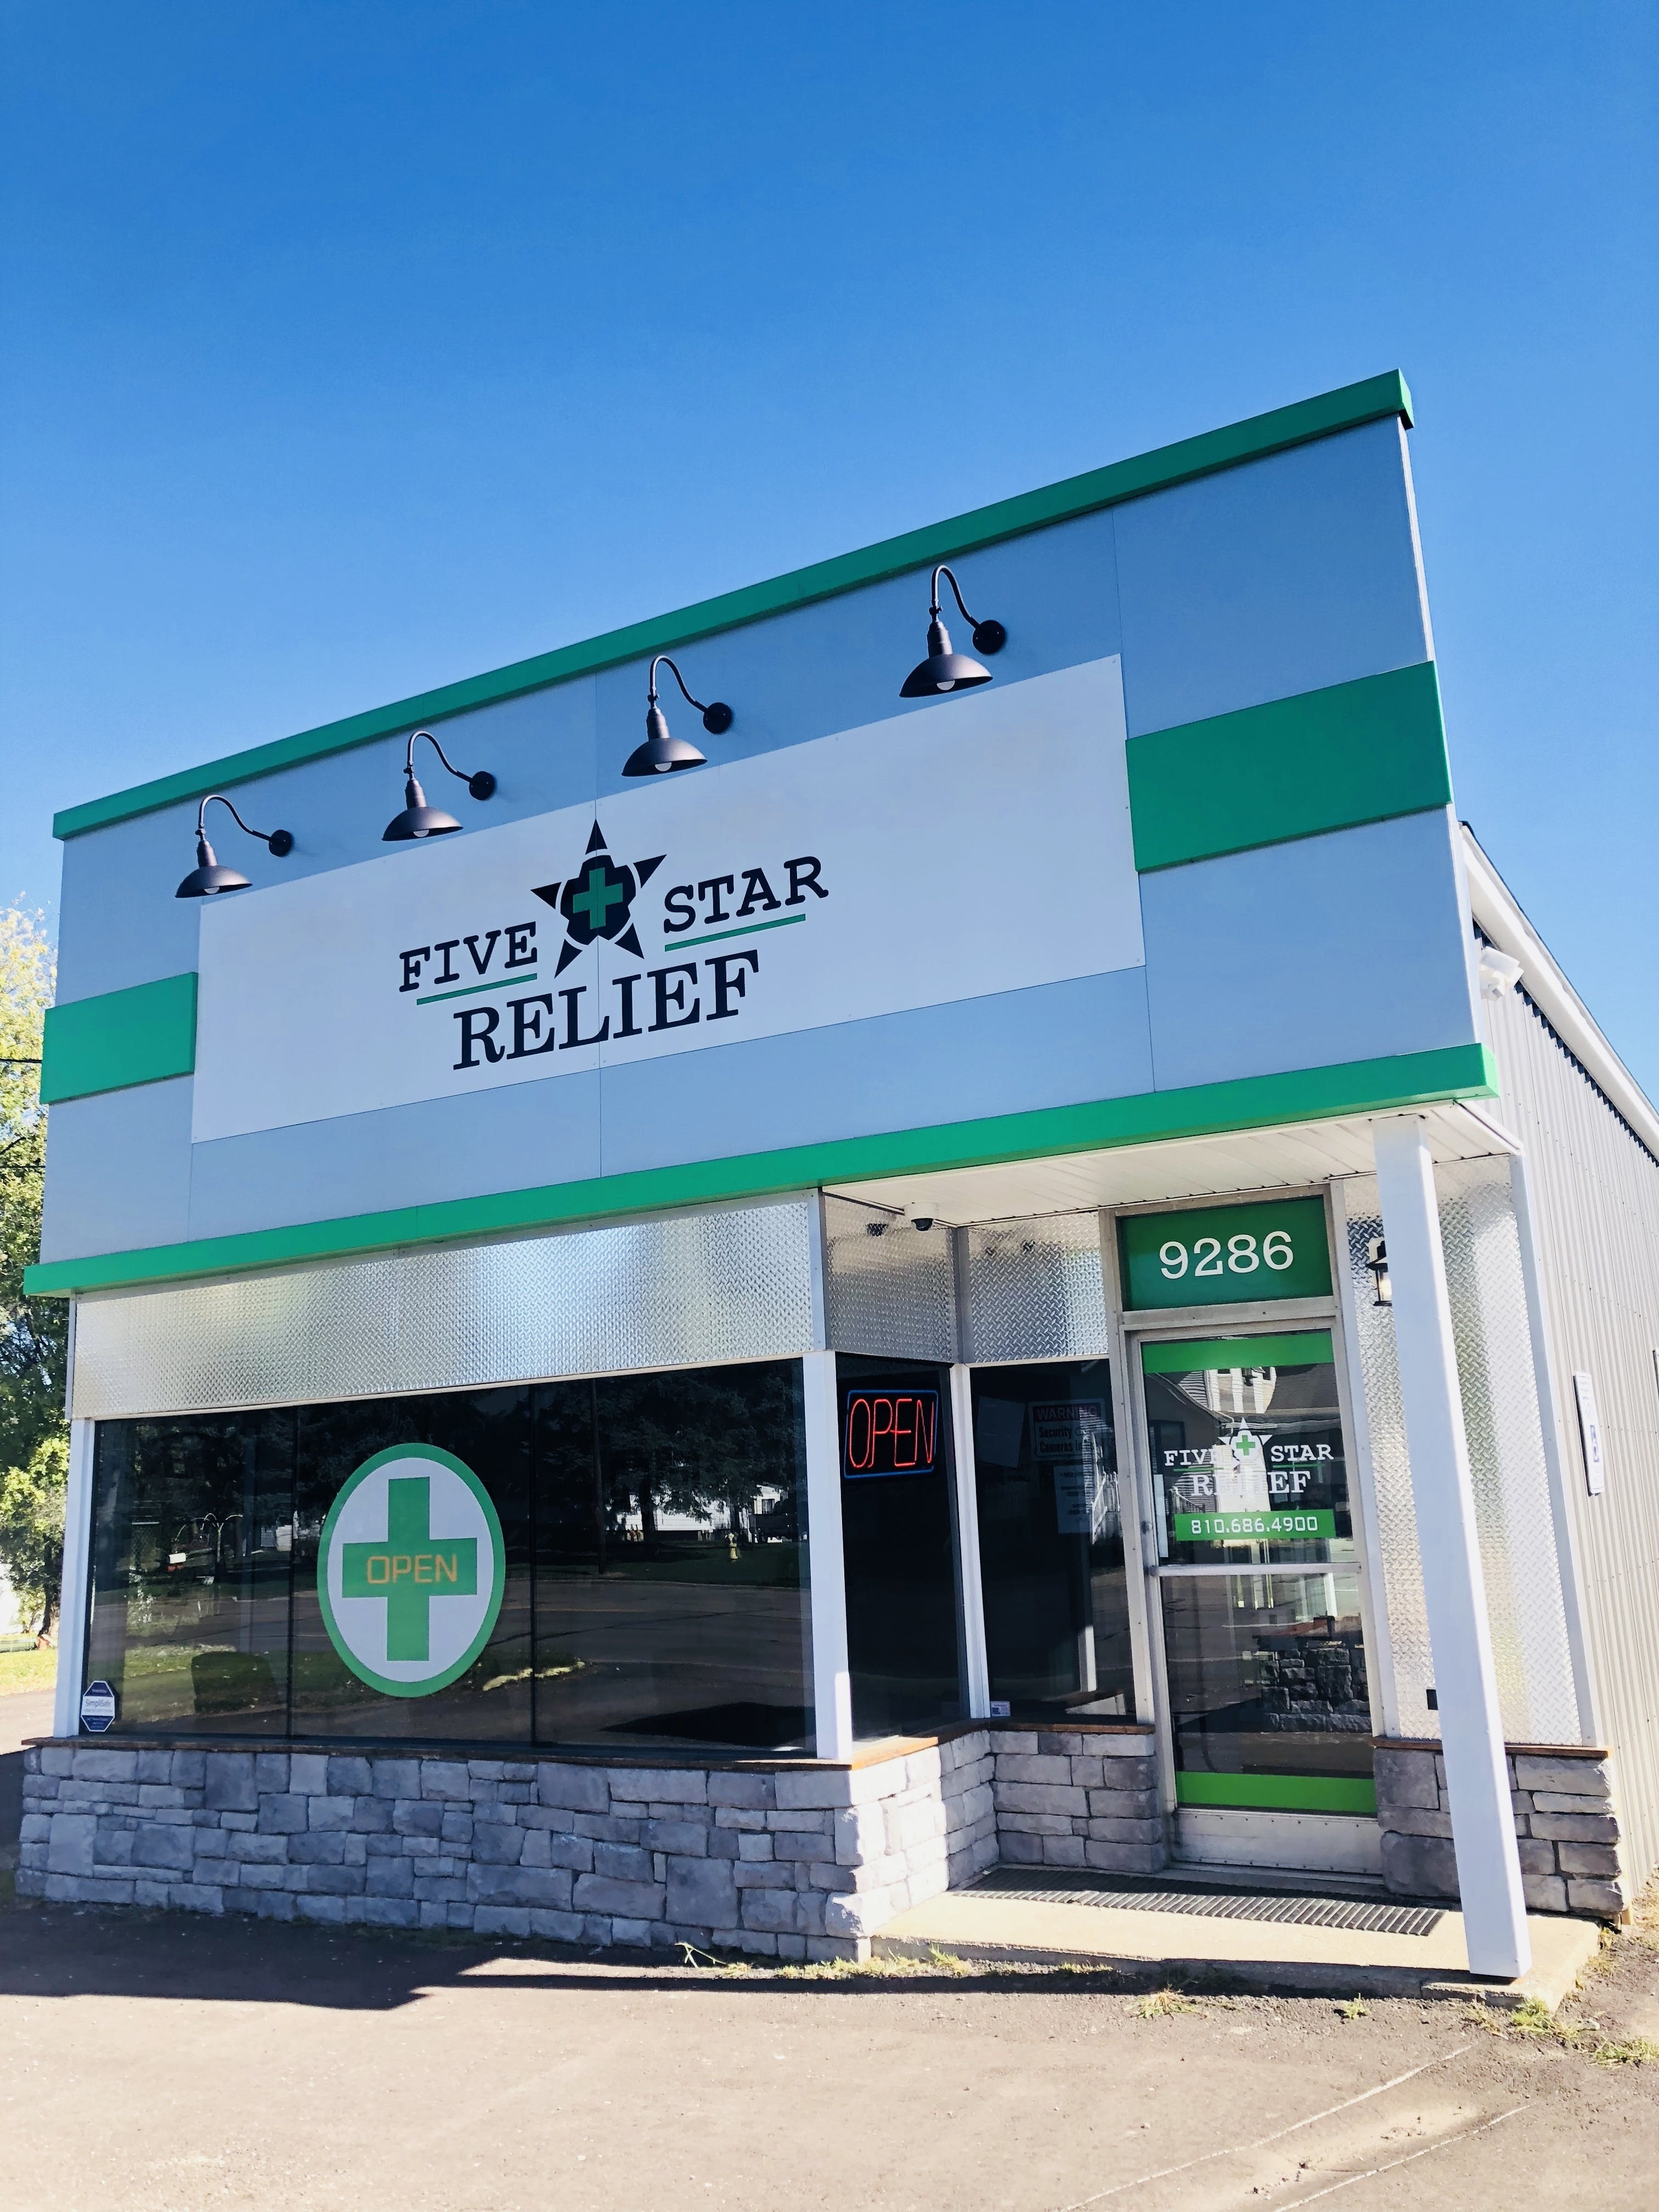 Five Star Relief | Store